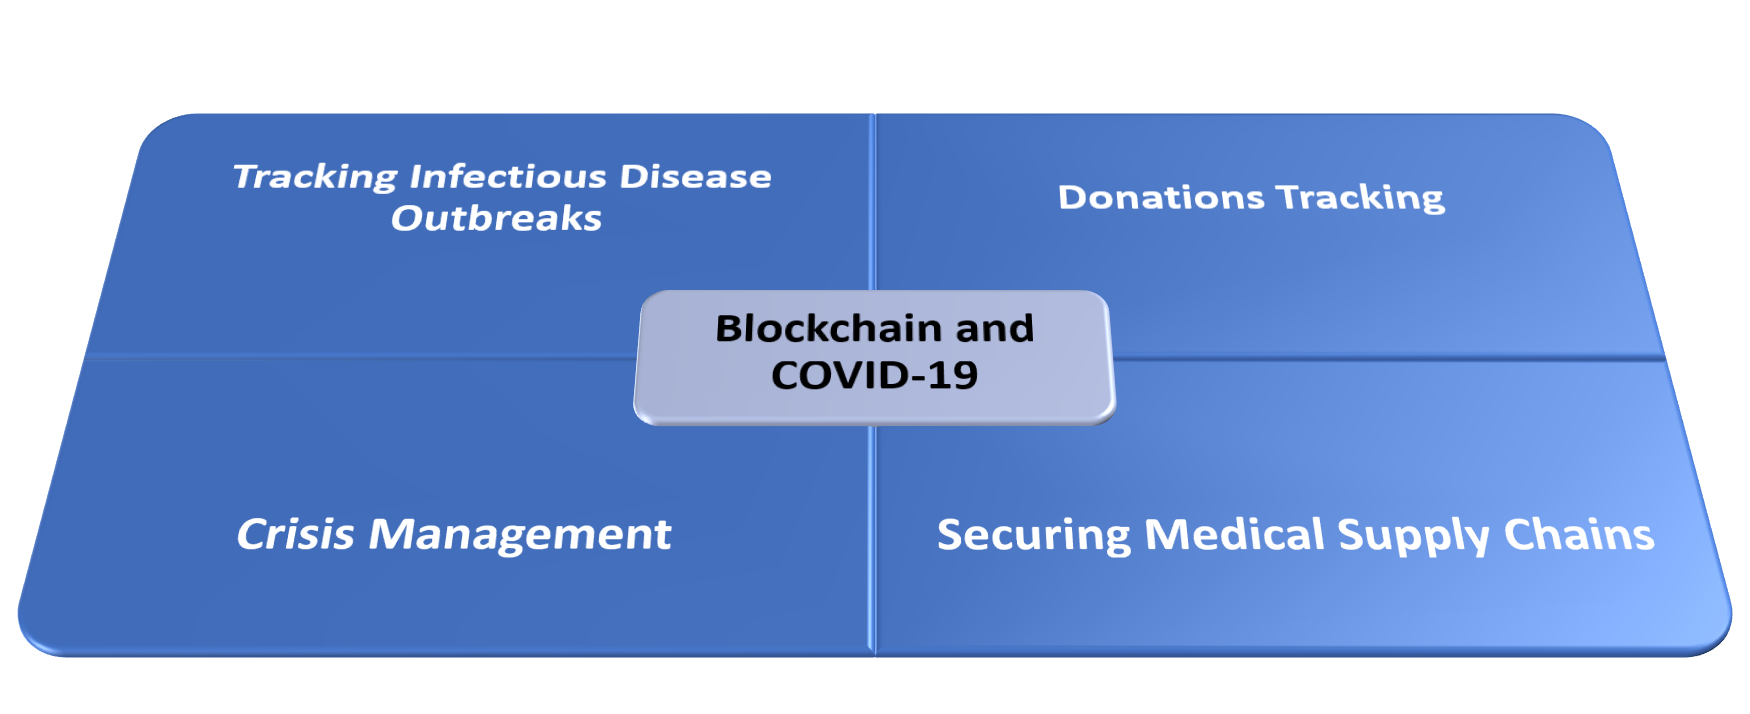 Blockchain Technology And COVID-19